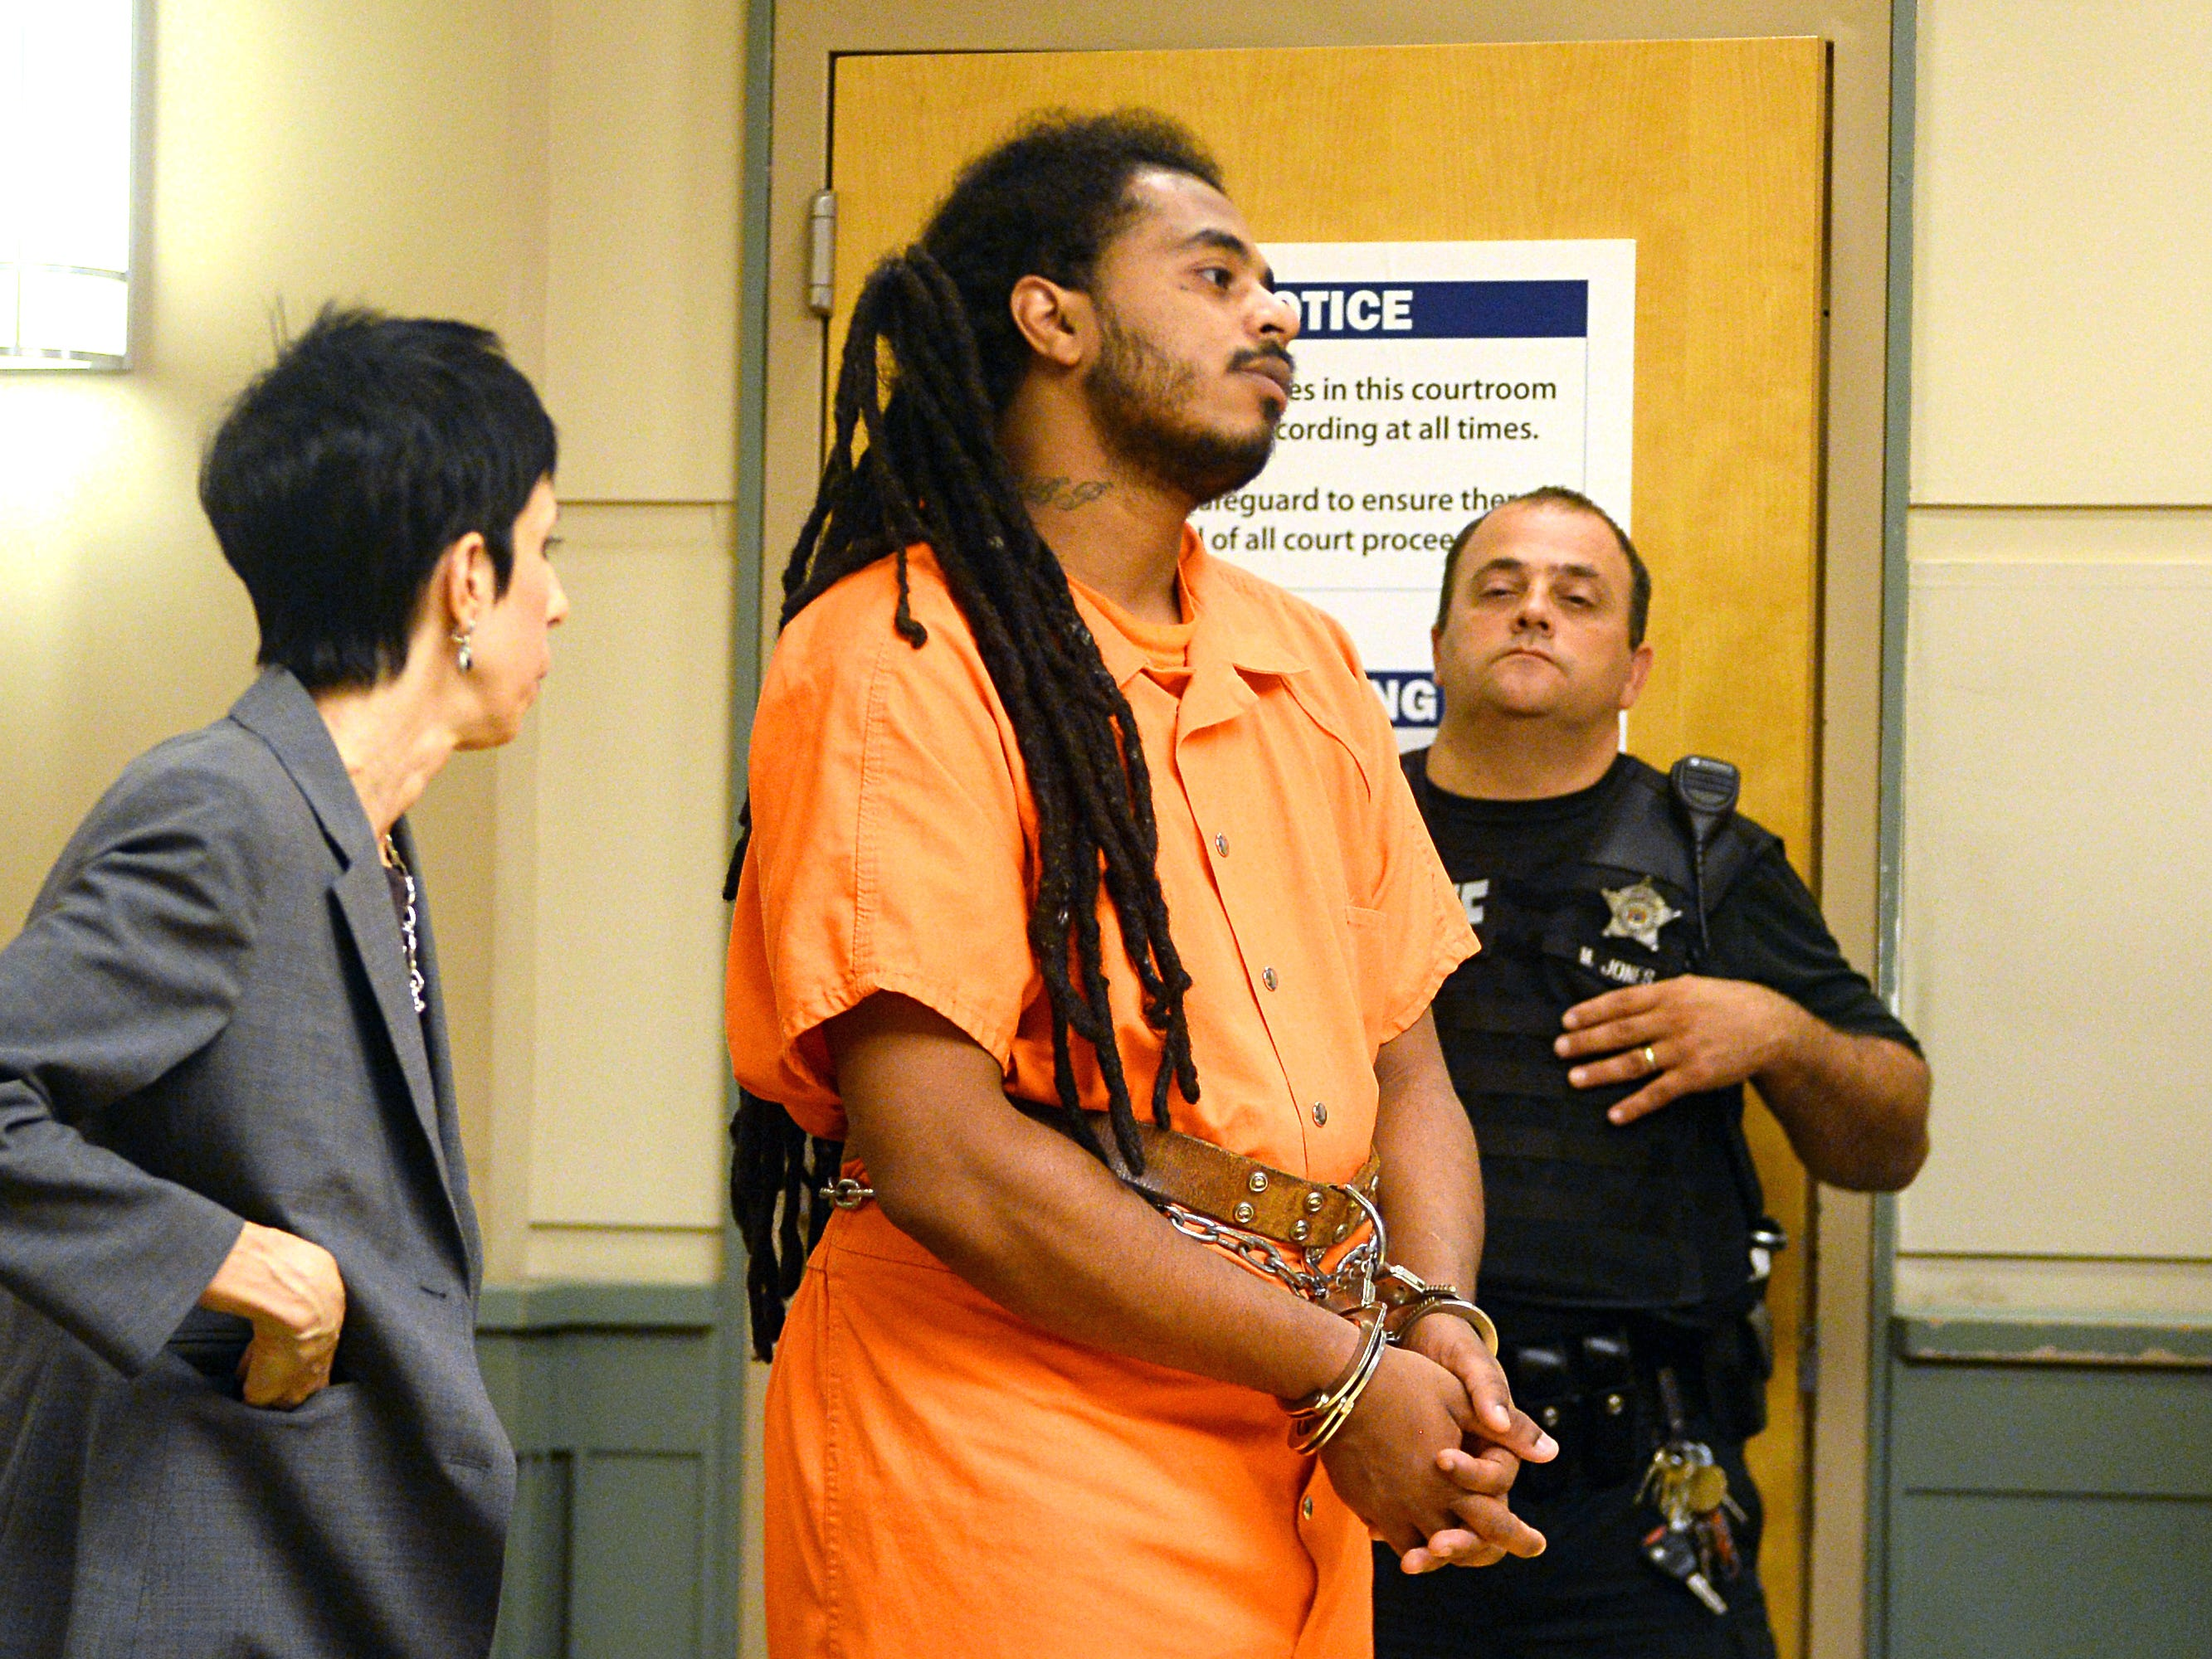 Michael L. Elliott, 25, appears for a pre-trial detention hearing at the Cumberland County Court House on Thursday, August 30. Elliott has been charged with murder for the killing of 9-year-old Jennifer Trejo of Bridgeton.